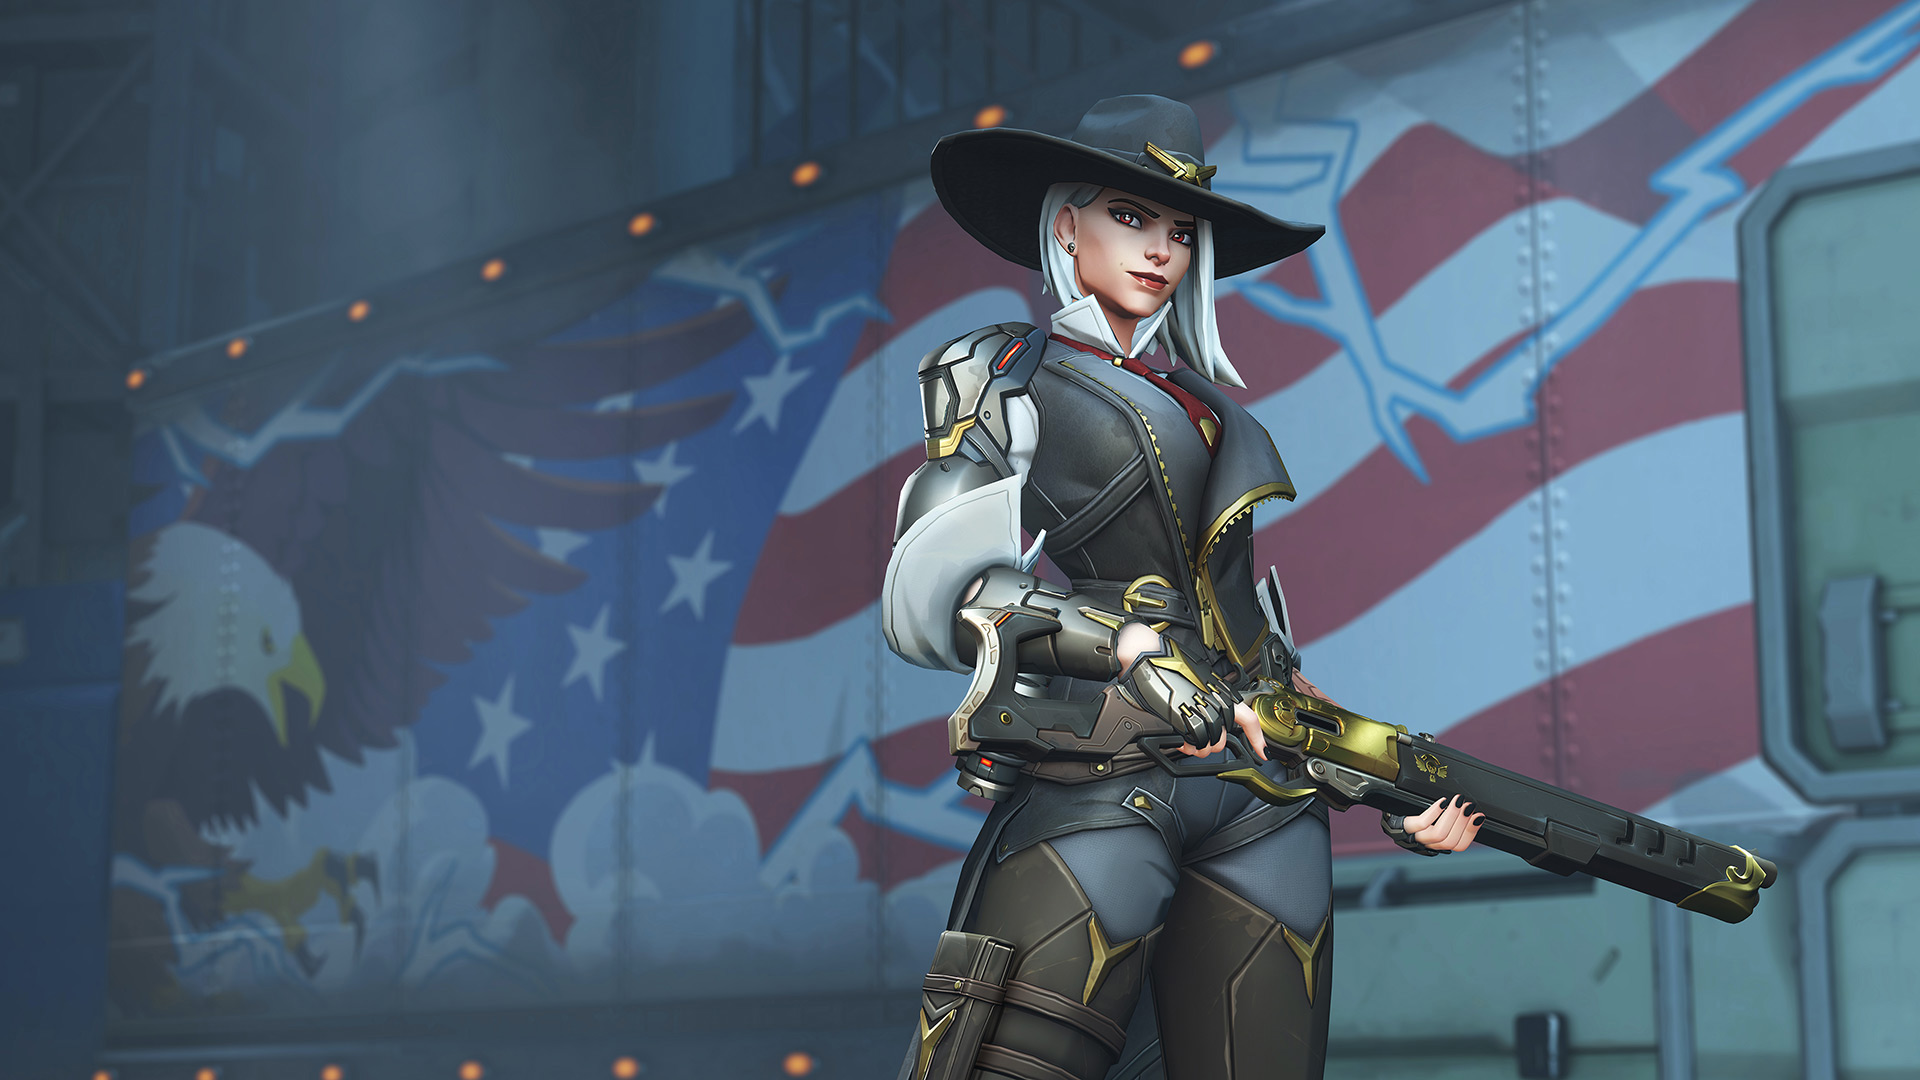 Today's Overwatch patch brings out Ashe and more balance changes screenshot